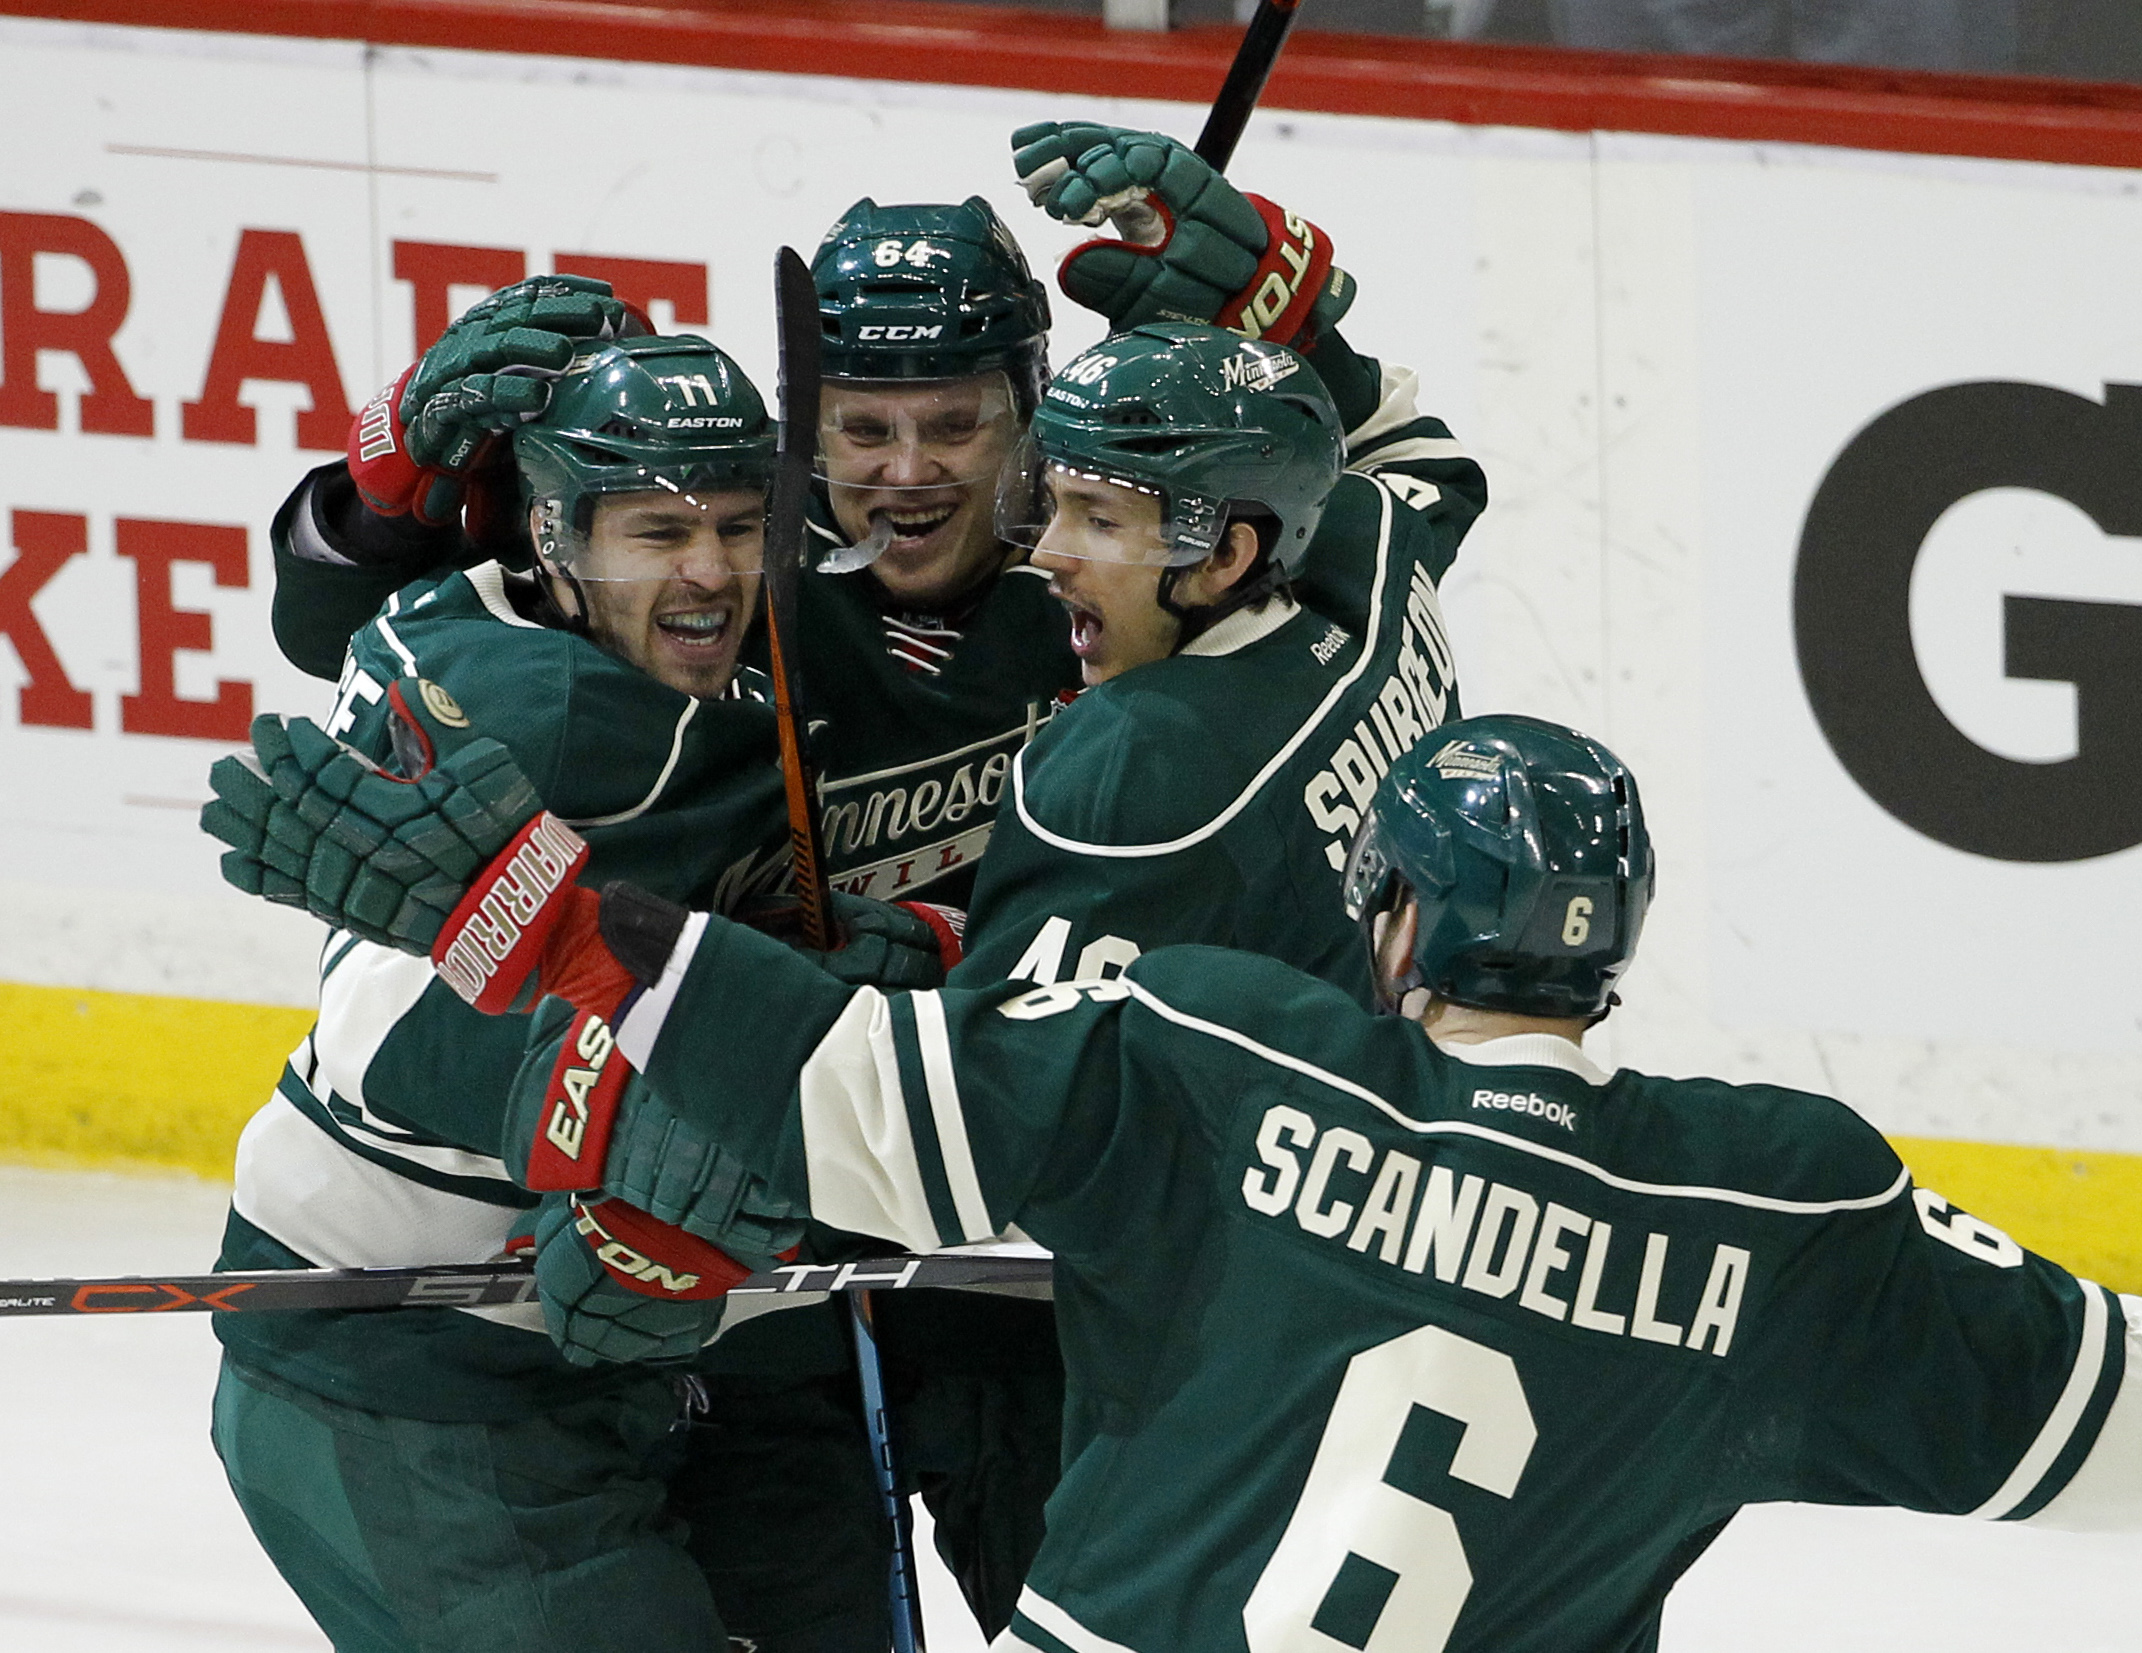 Blues pull Allen in 2nd period after 2nd goal by Wild